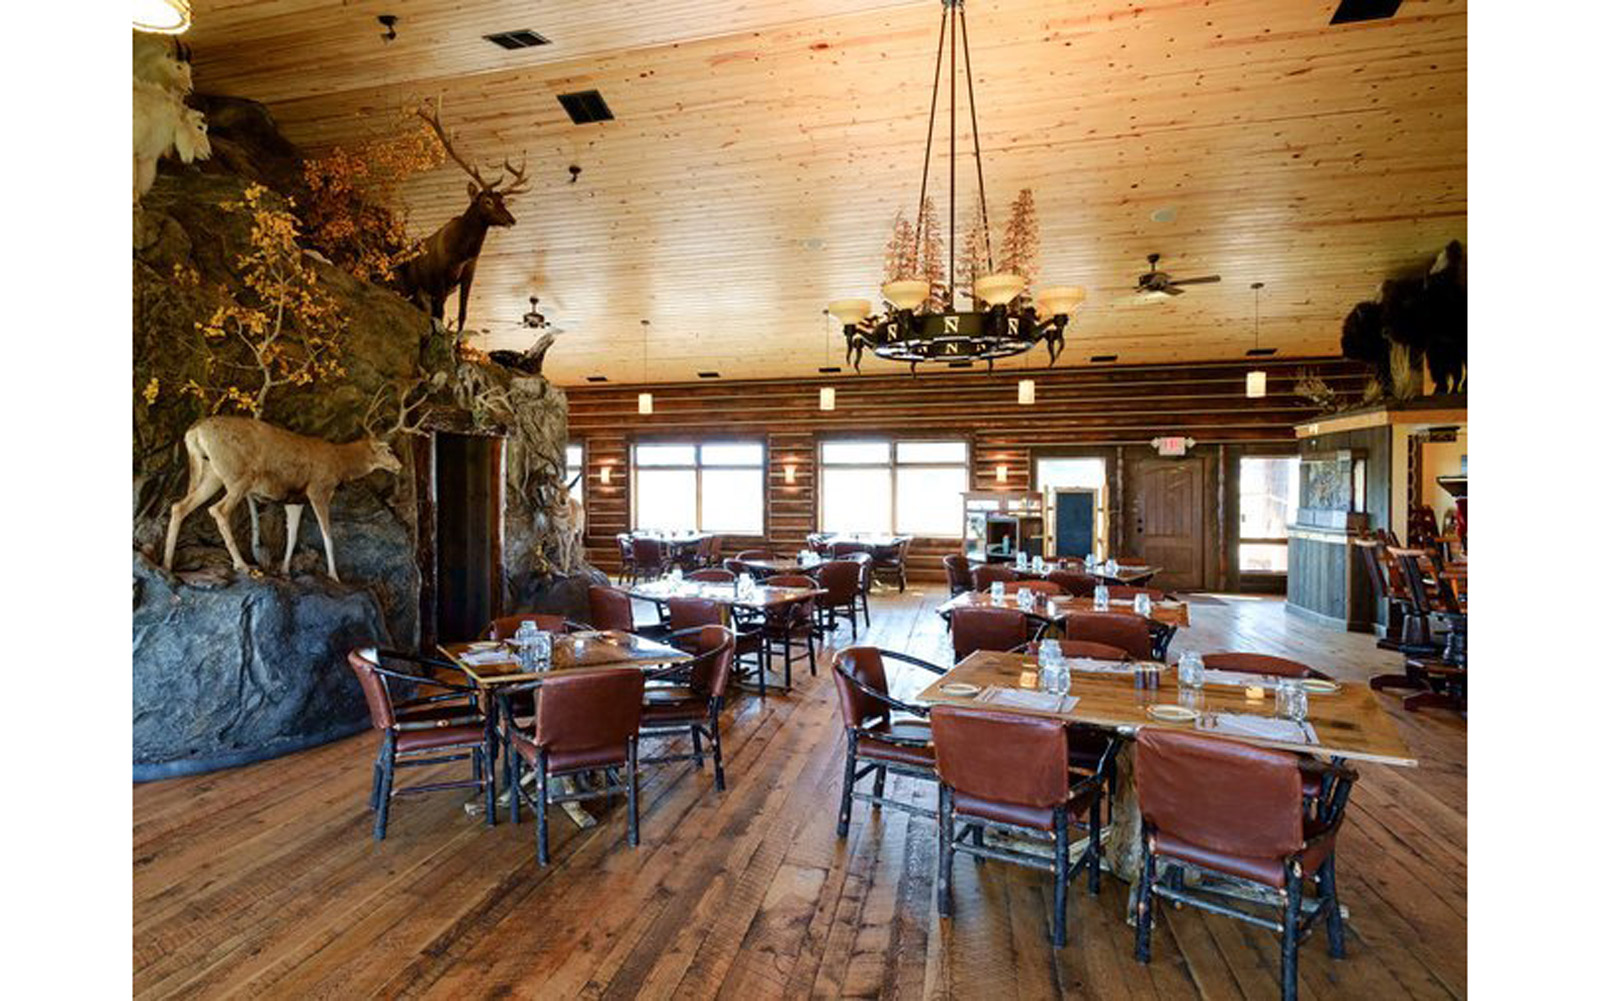 Montana – Bar N Ranch, West Yellowstone, MT